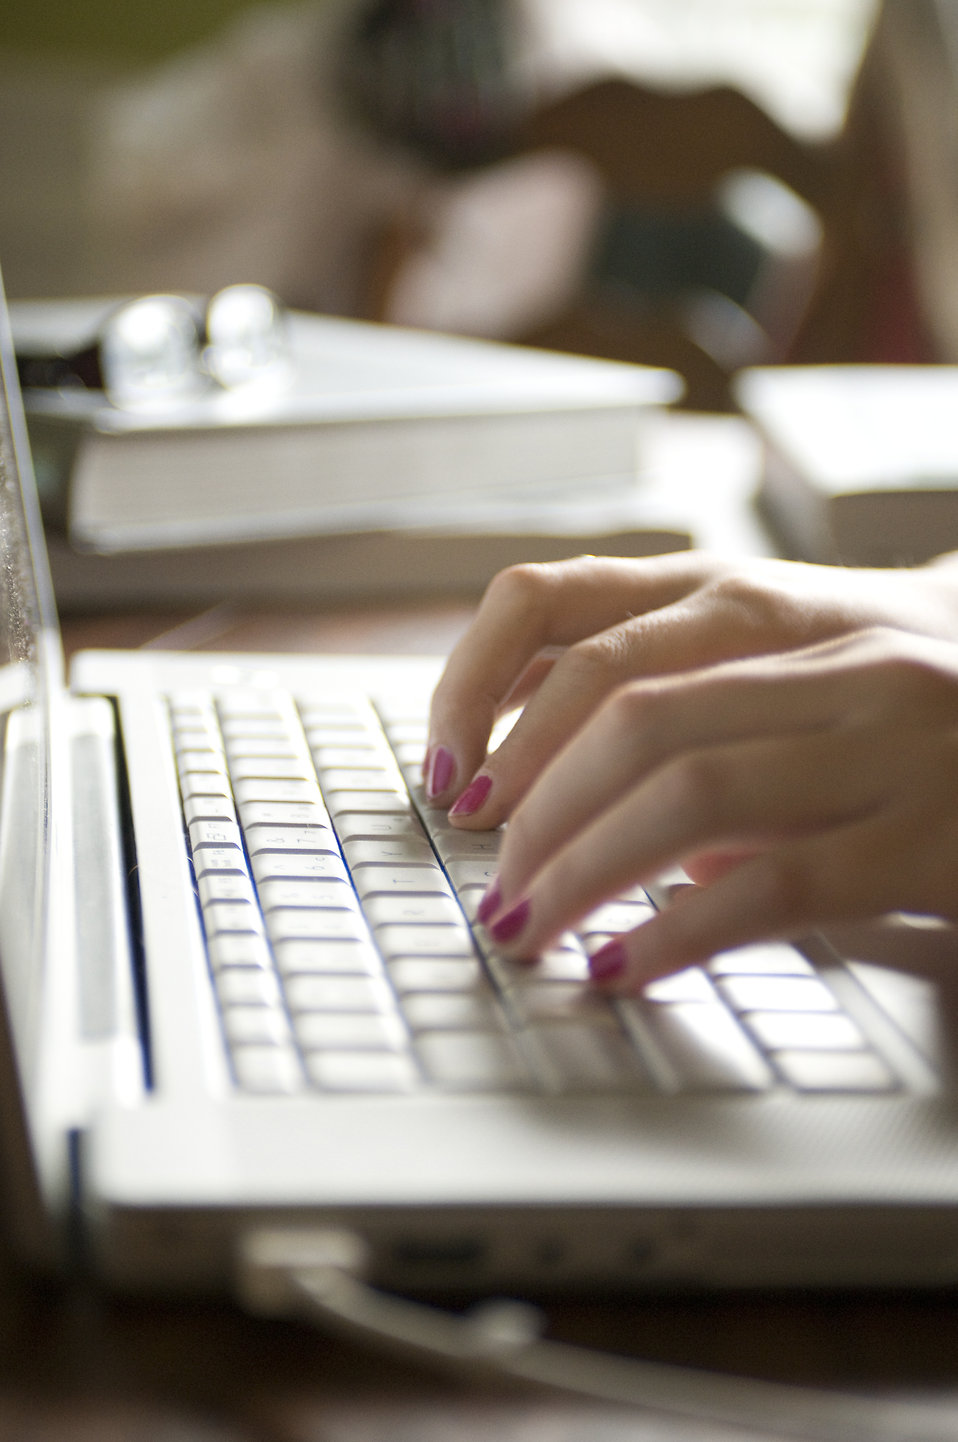 Female hands typing on a laptop keyboard : Free Stock Photo